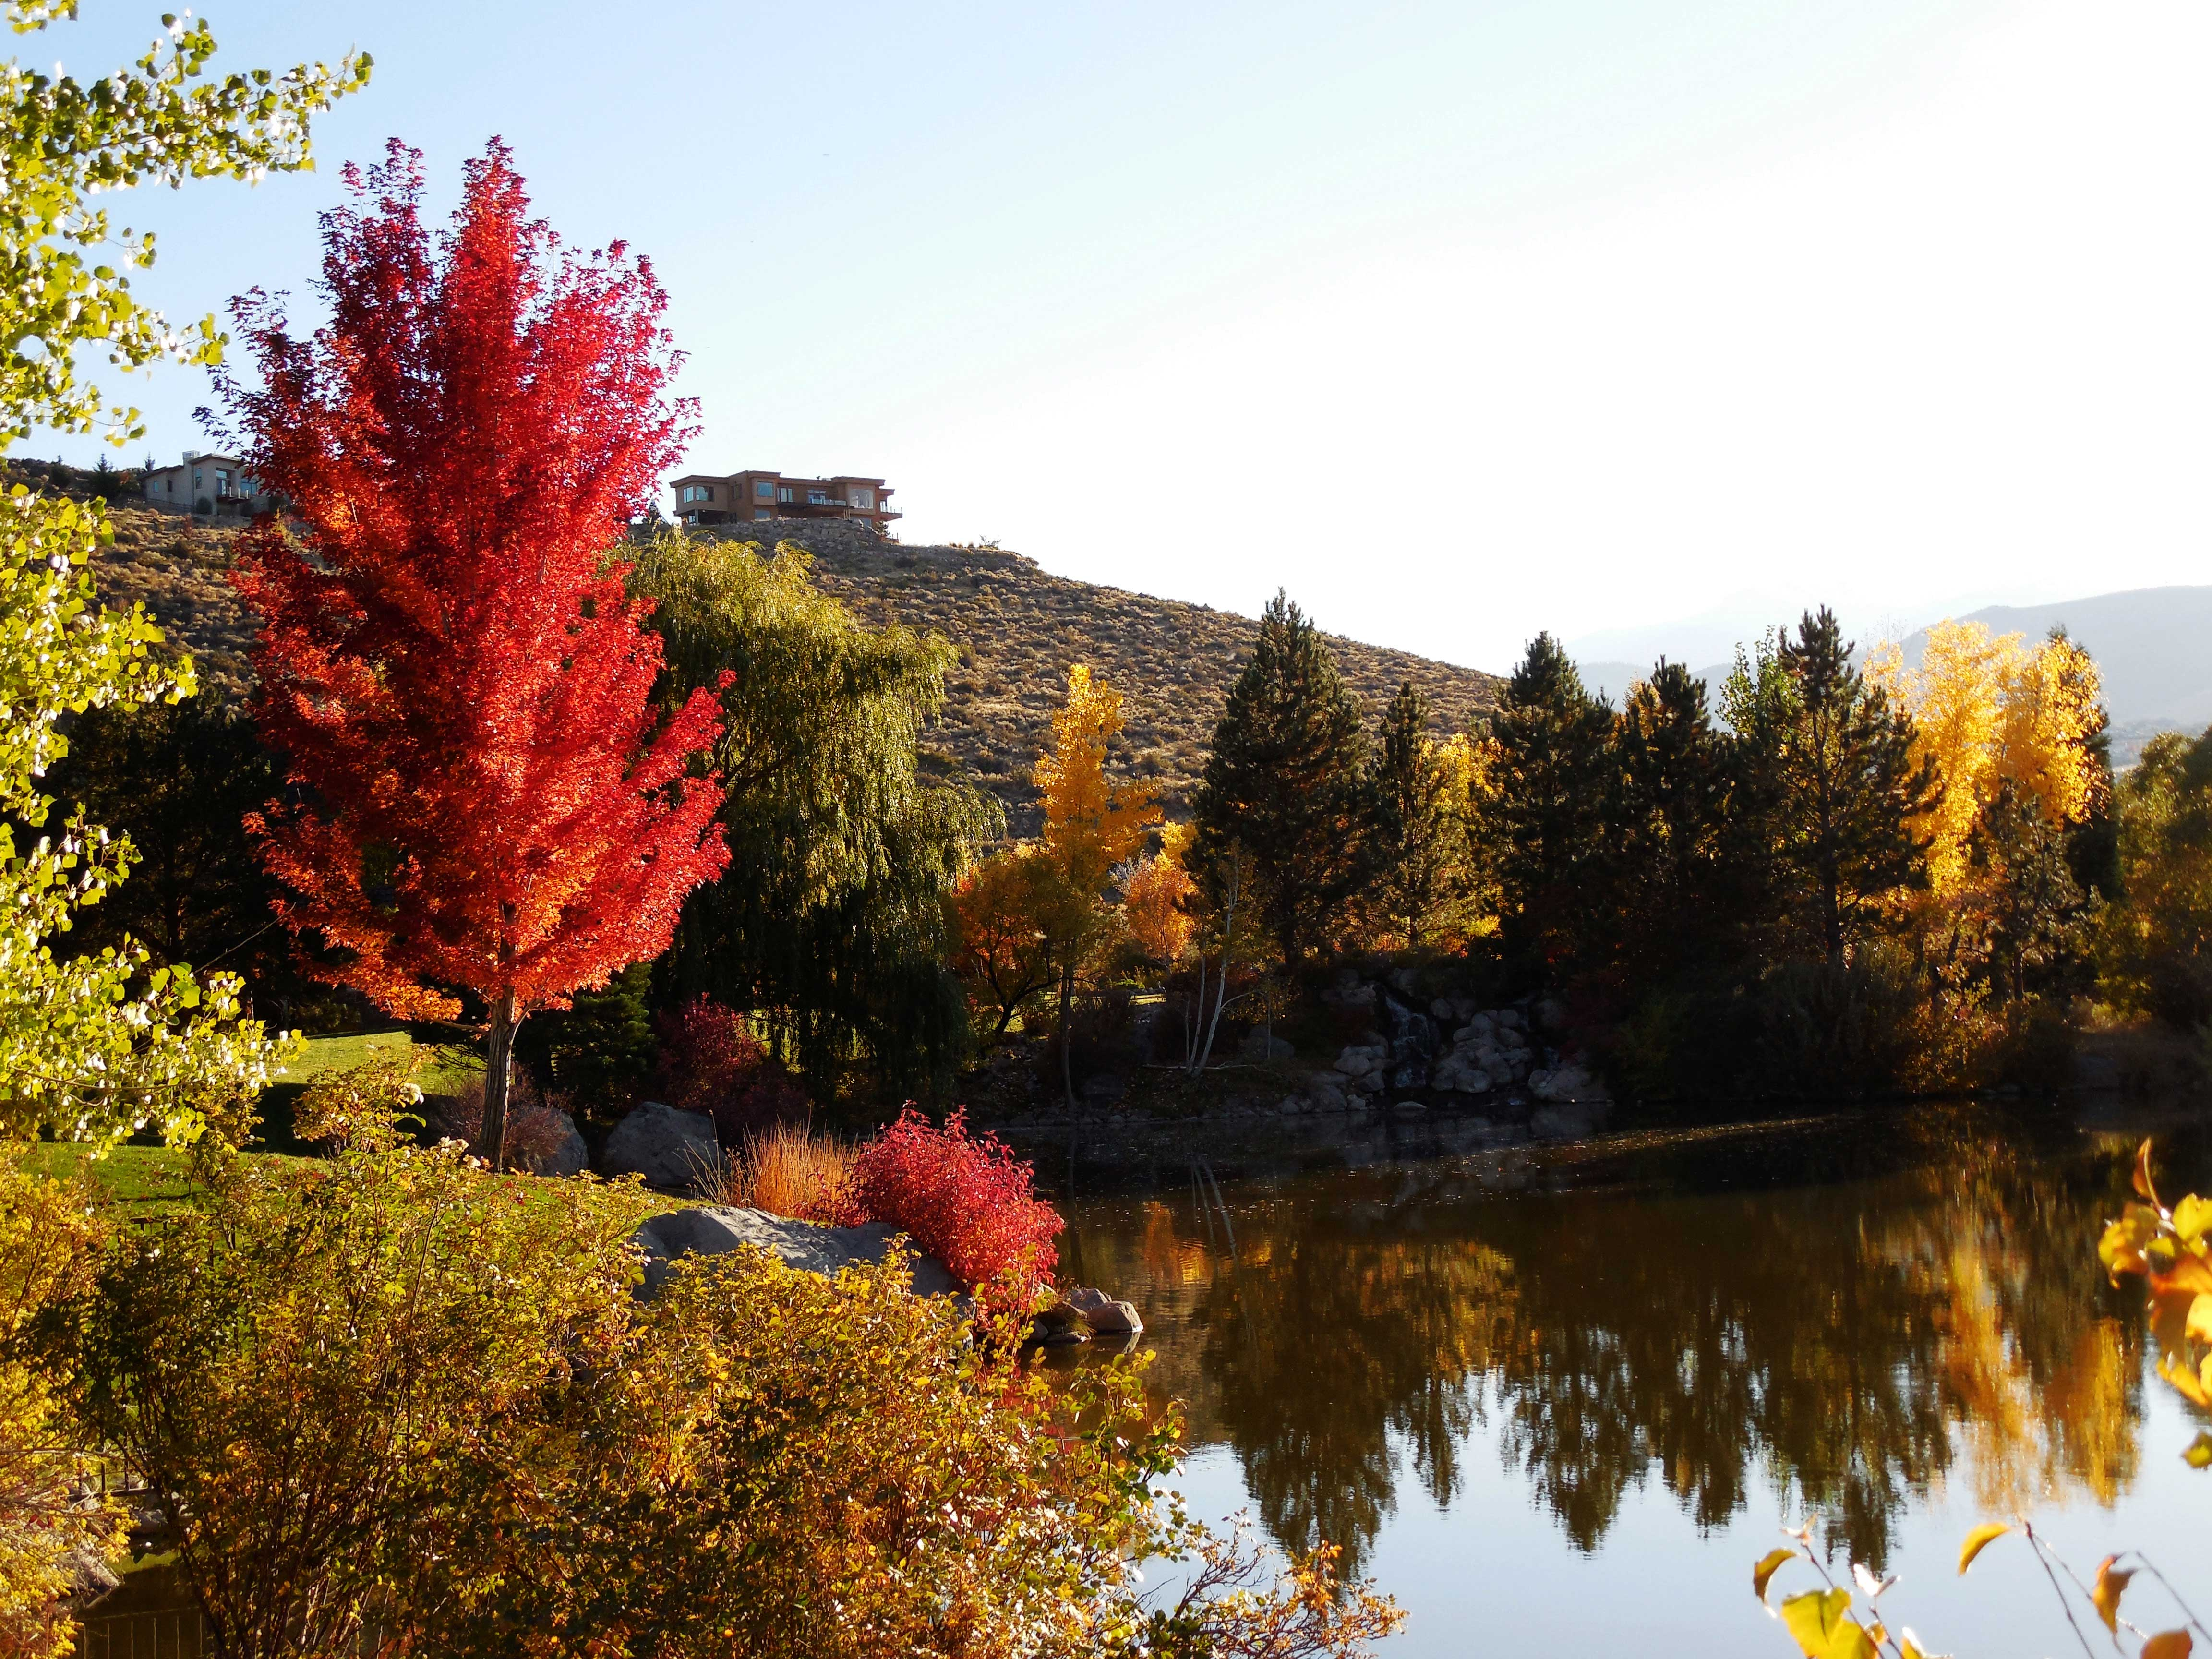 Warm sunny days with cool but not freezing nights bring out brighter colors in our trees. Photo by Wendy Hanson Mazet.